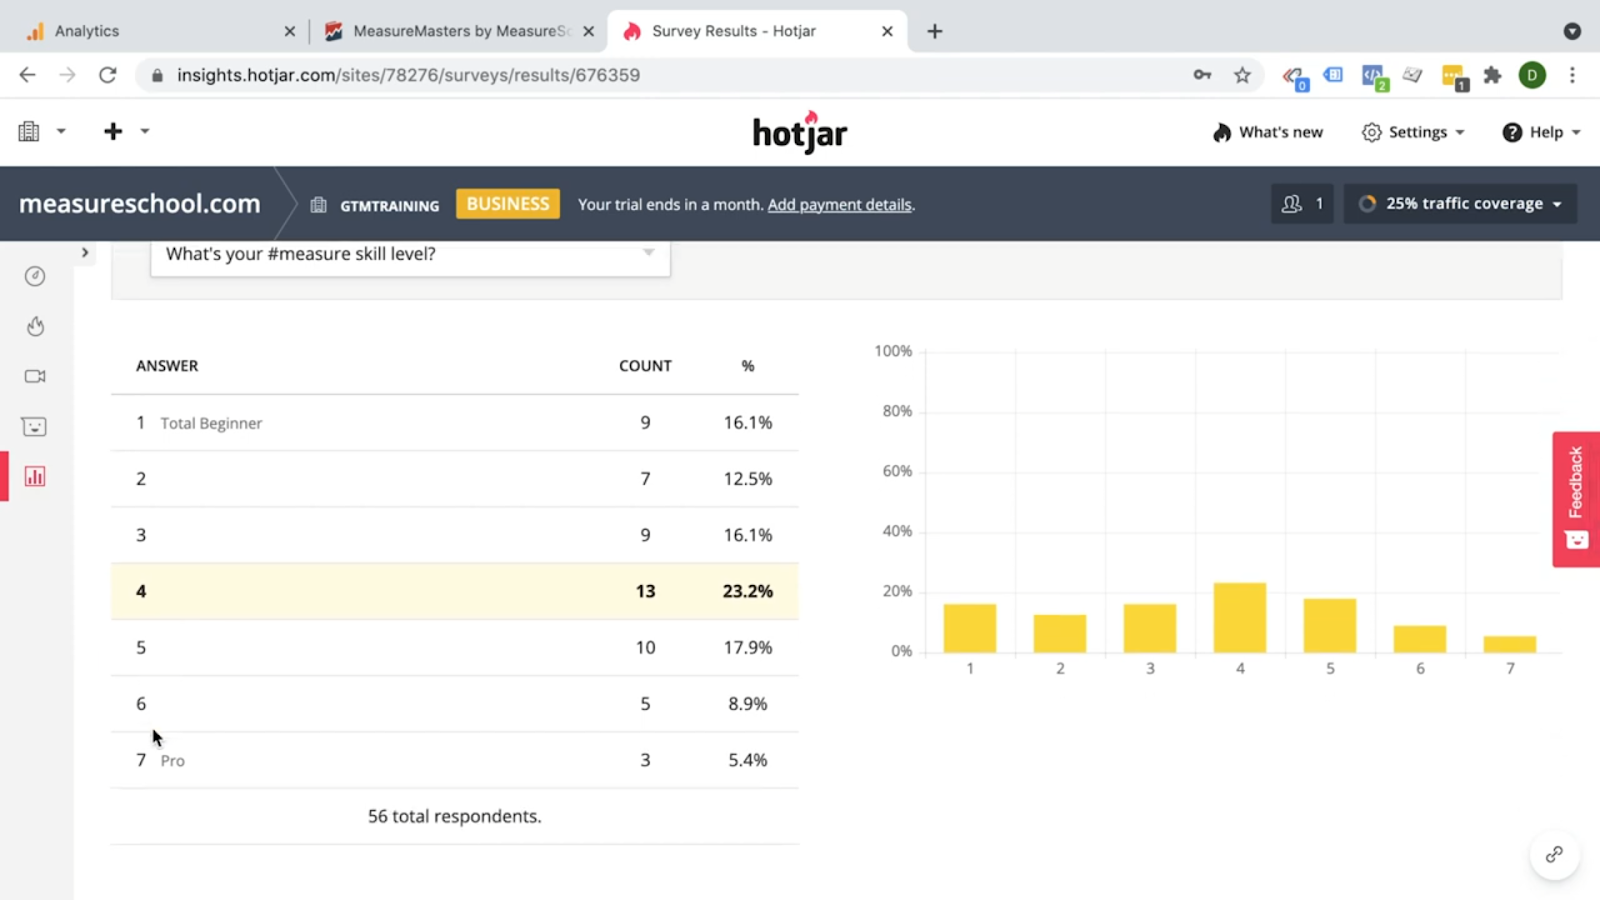 Hotjar - Chart form - What's your measure skill level?